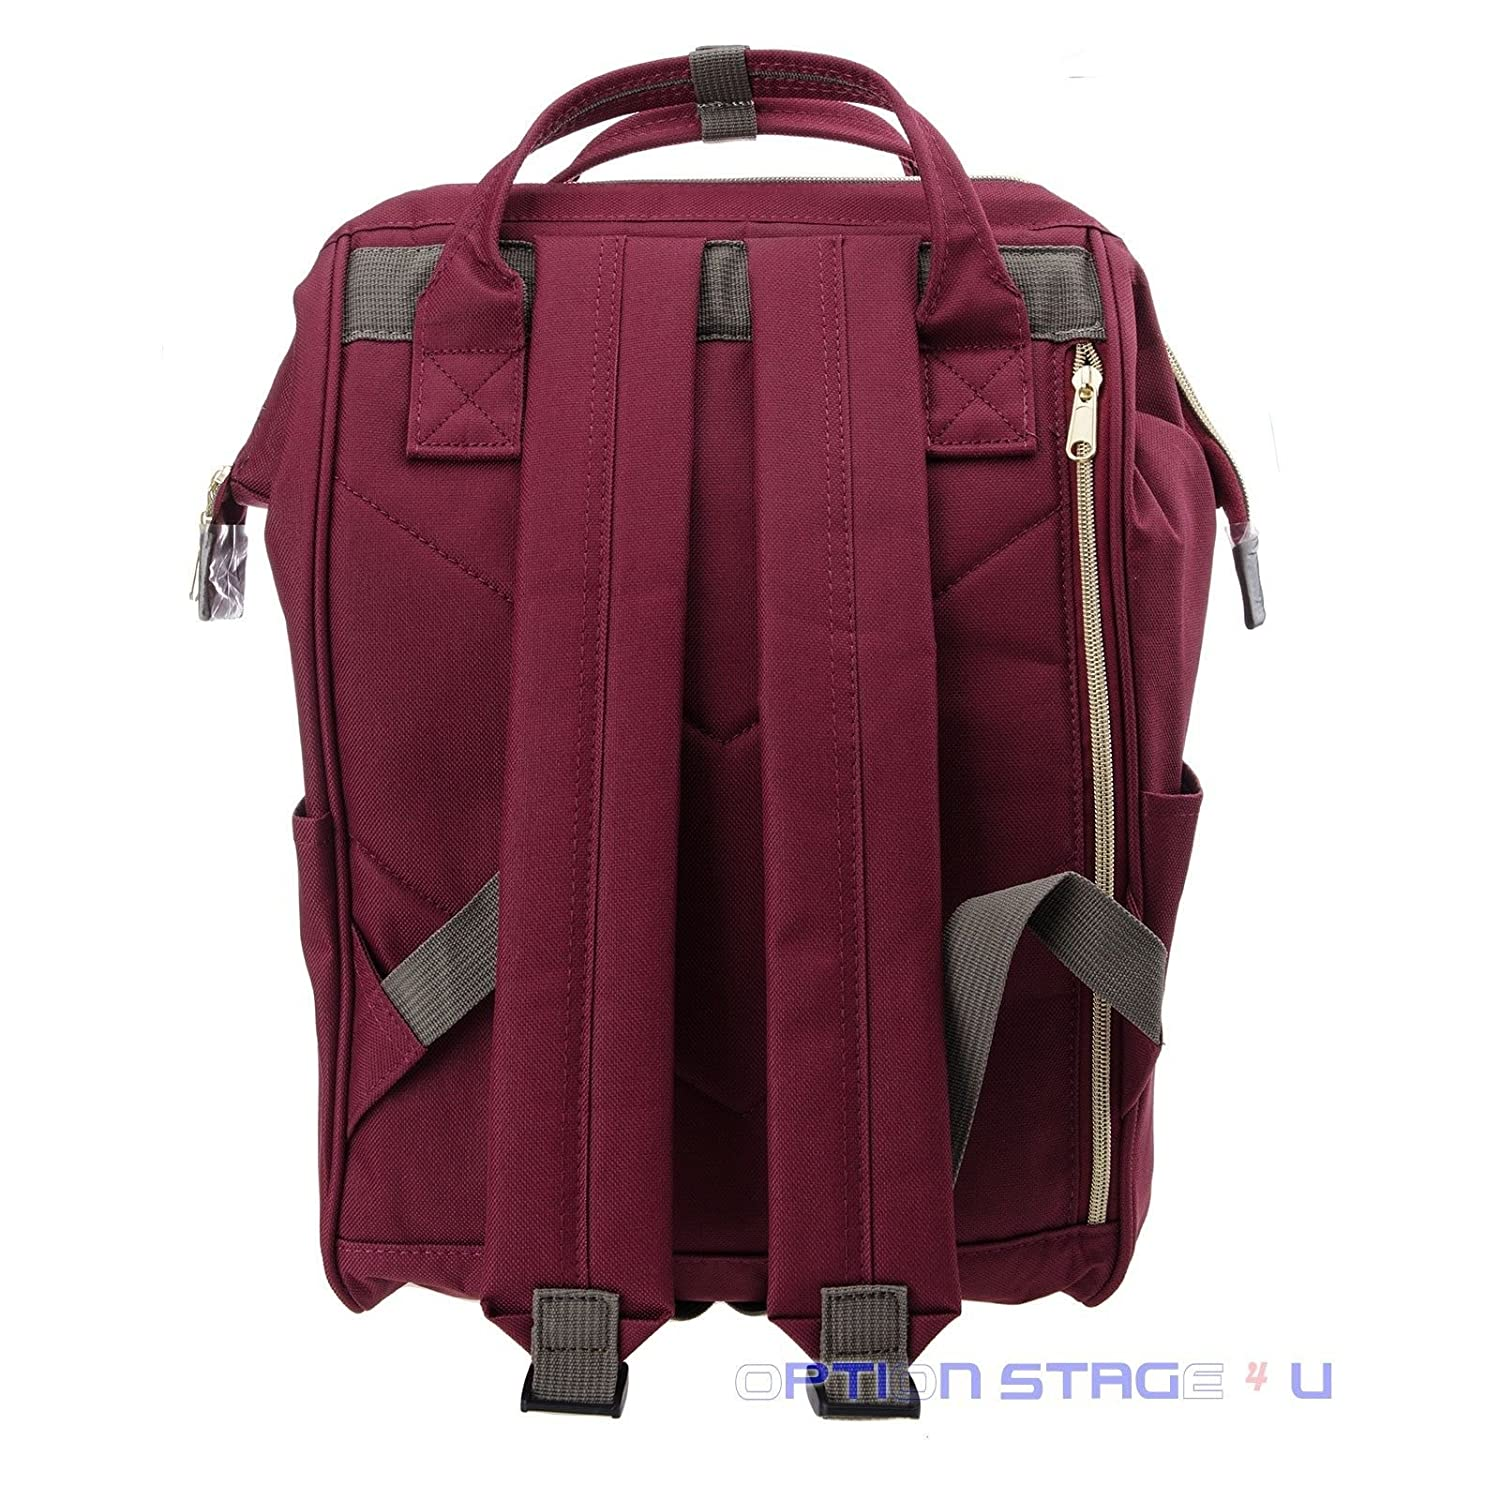 f5010769065 Amazon.com : Anello Official Rudy Red Japan Unisex Fashion Backpack  Rucksack Diaper Bag : Everything Else